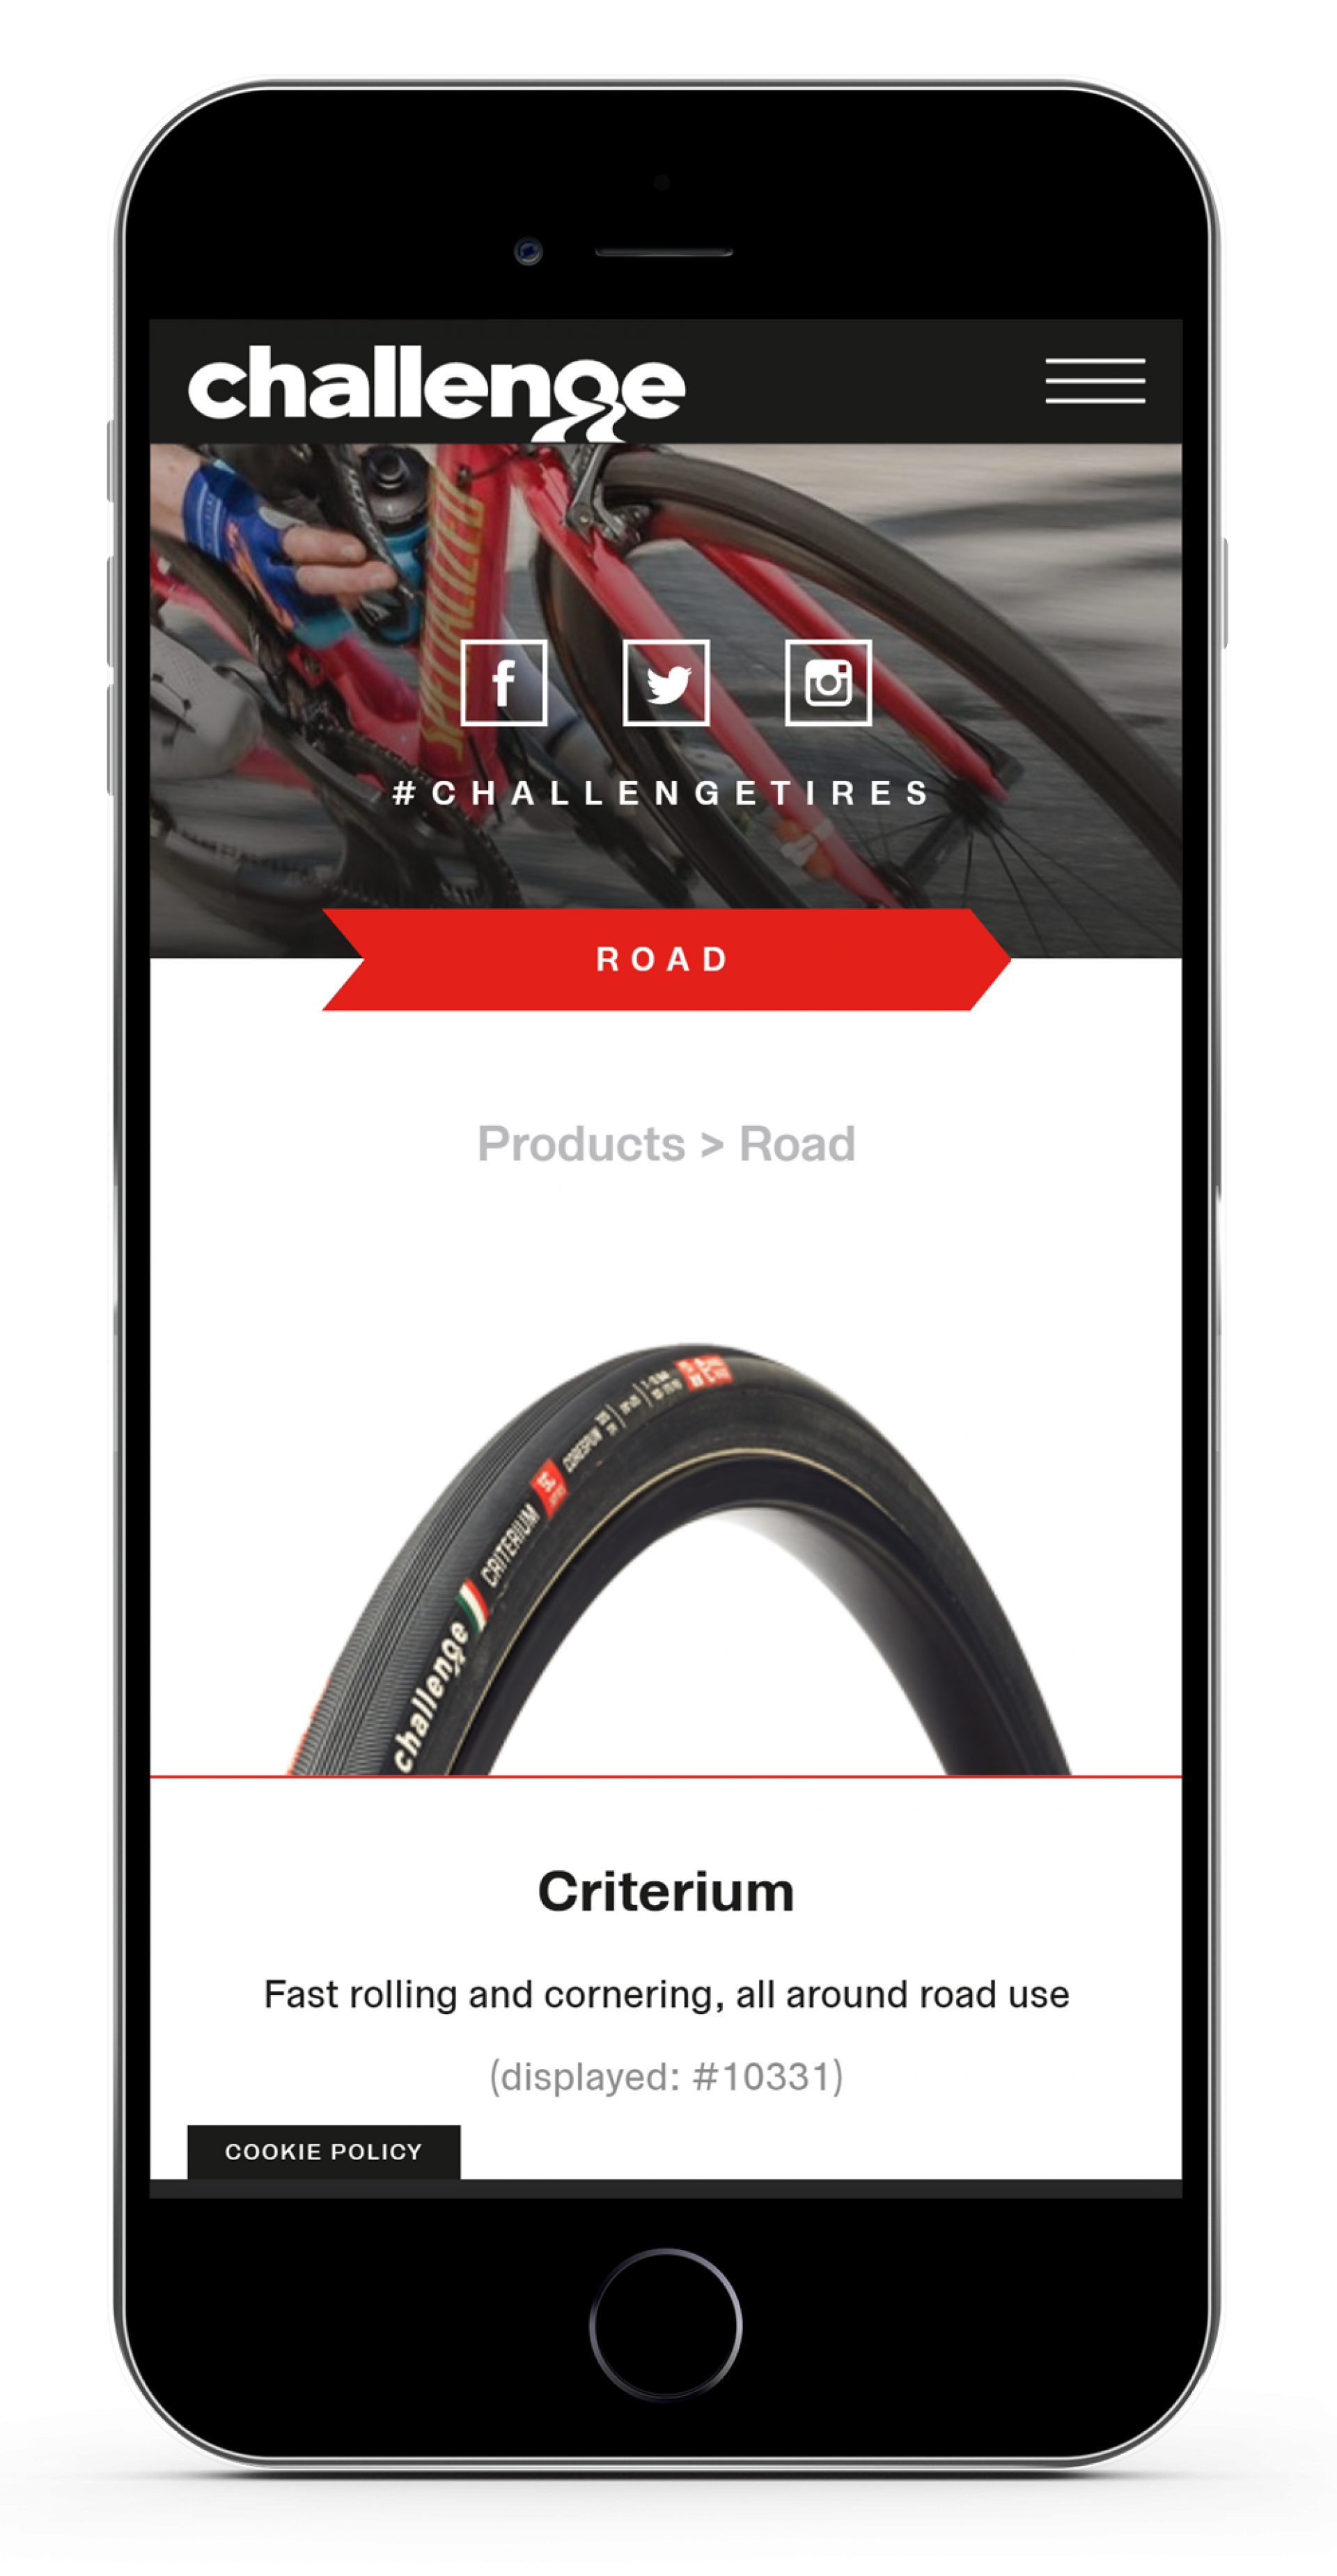 Phone Mockup Challengetires Com Products Overview